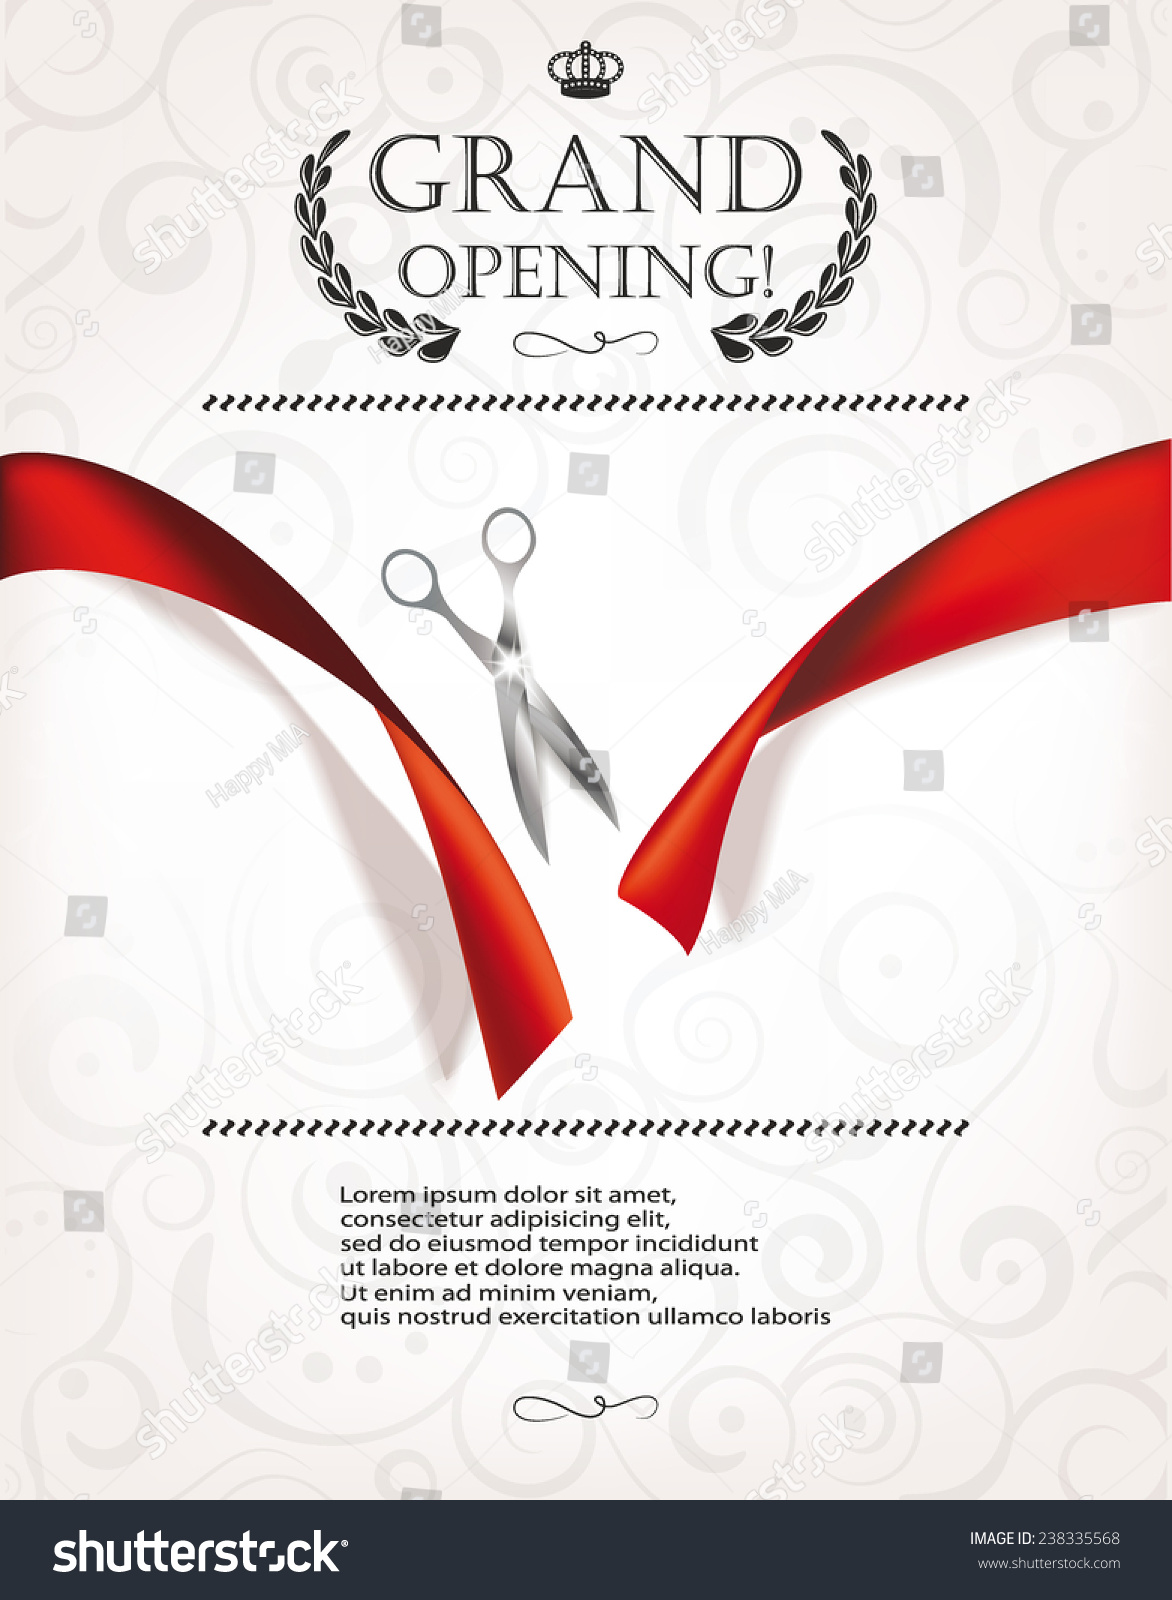 Grand Opening Invitation Card Silver Scissors Stock Vector 238335568 - Shutterstock